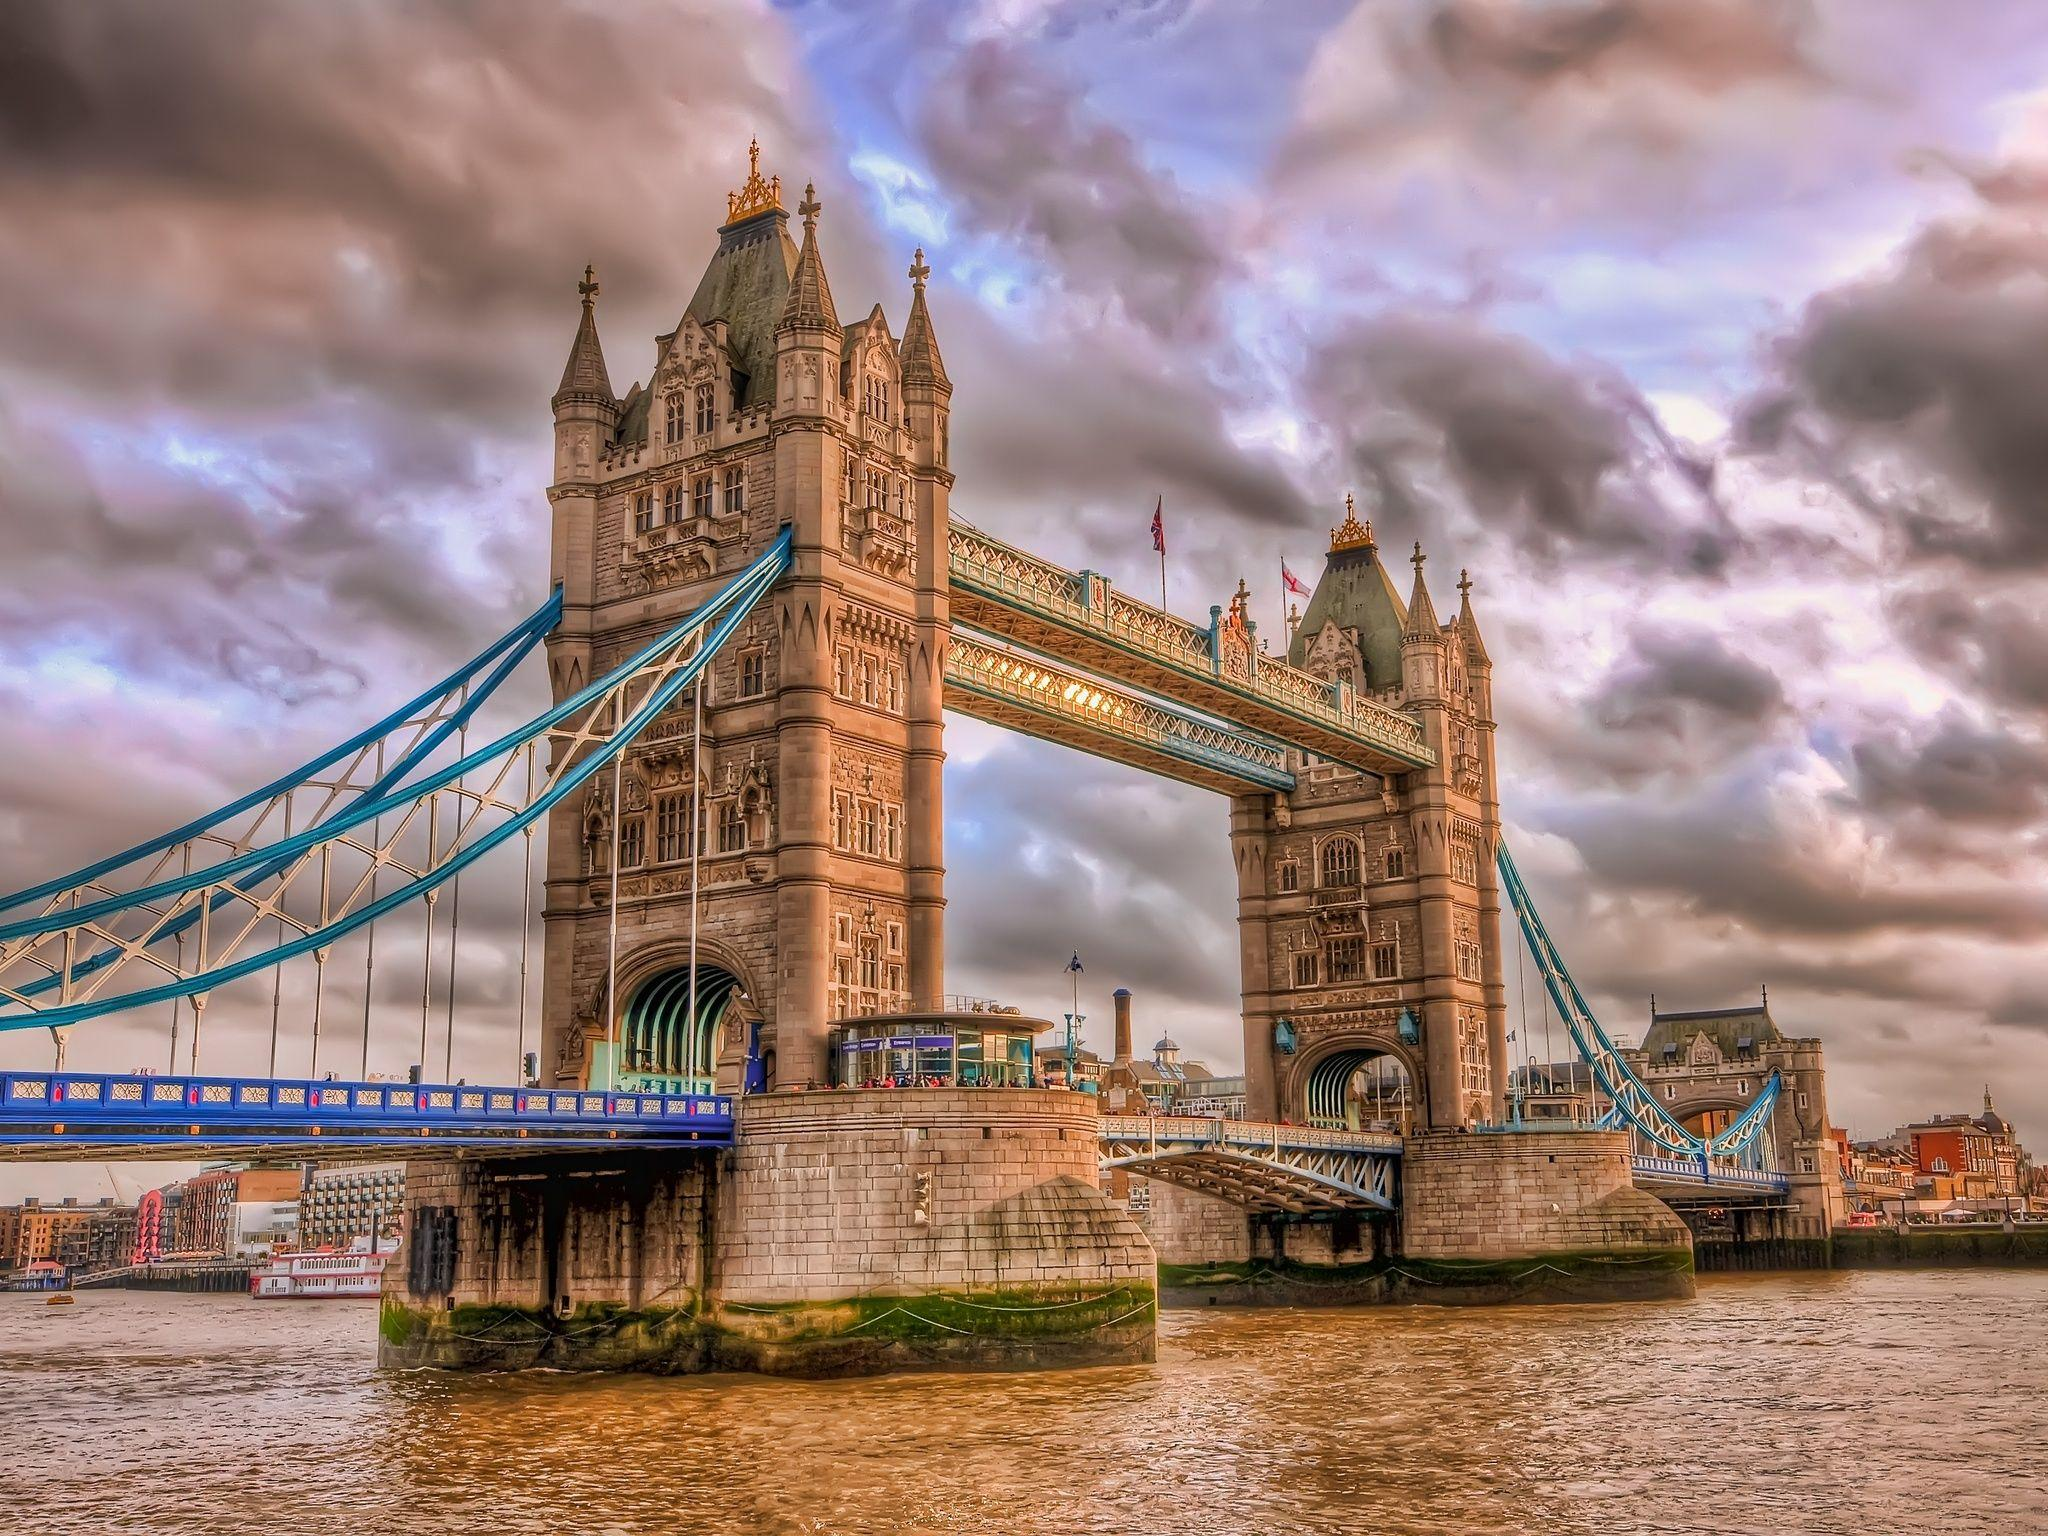 Tower Bridge Wallpaper 21 - 2048 X 1536 | stmed.net